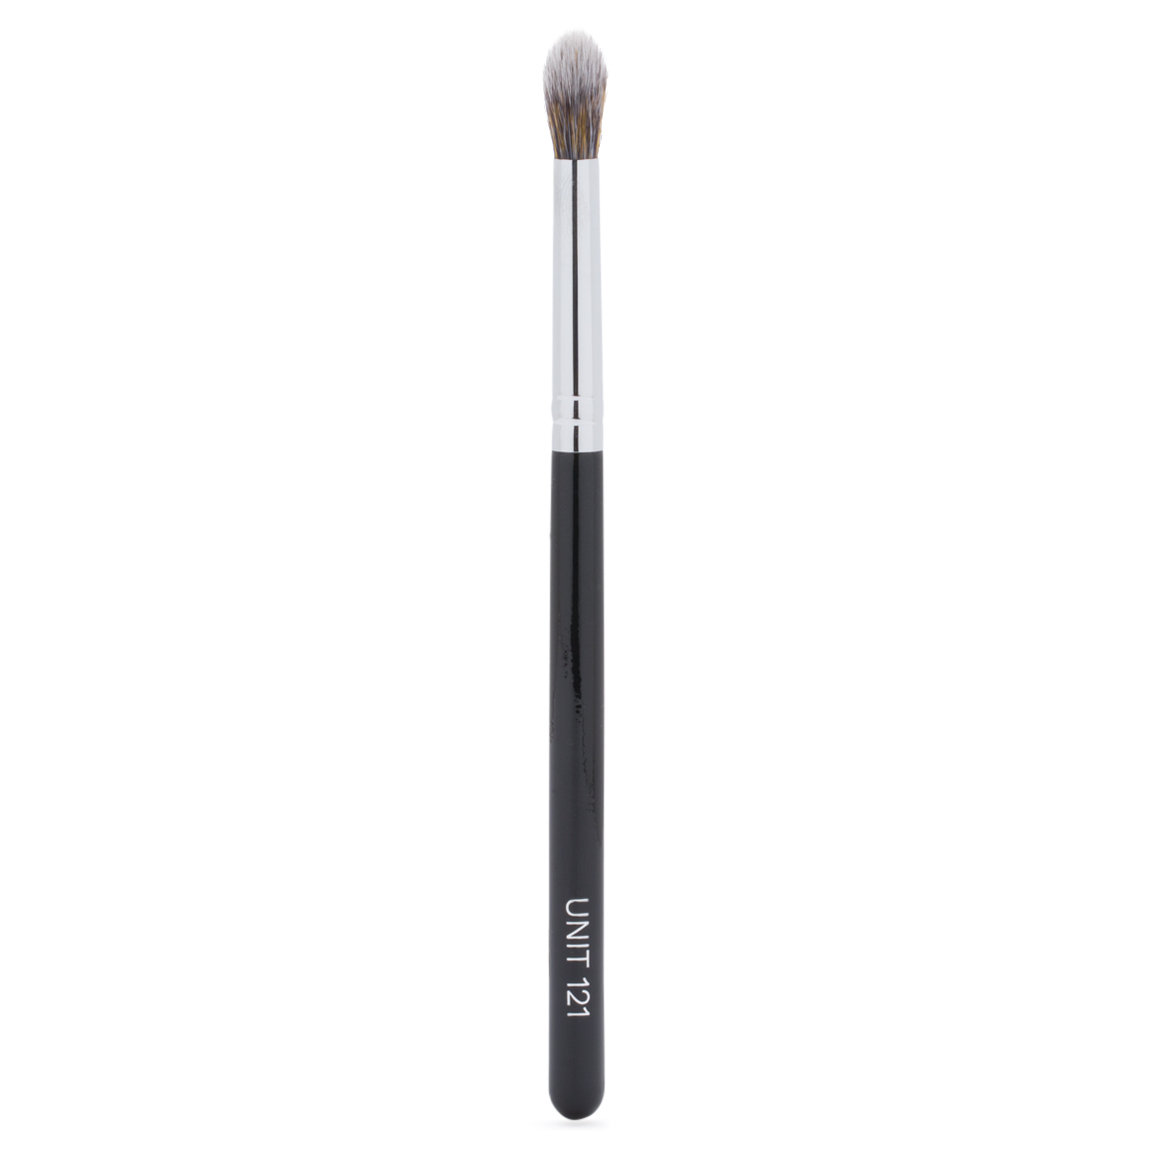 UNIT 121 Eye Brush